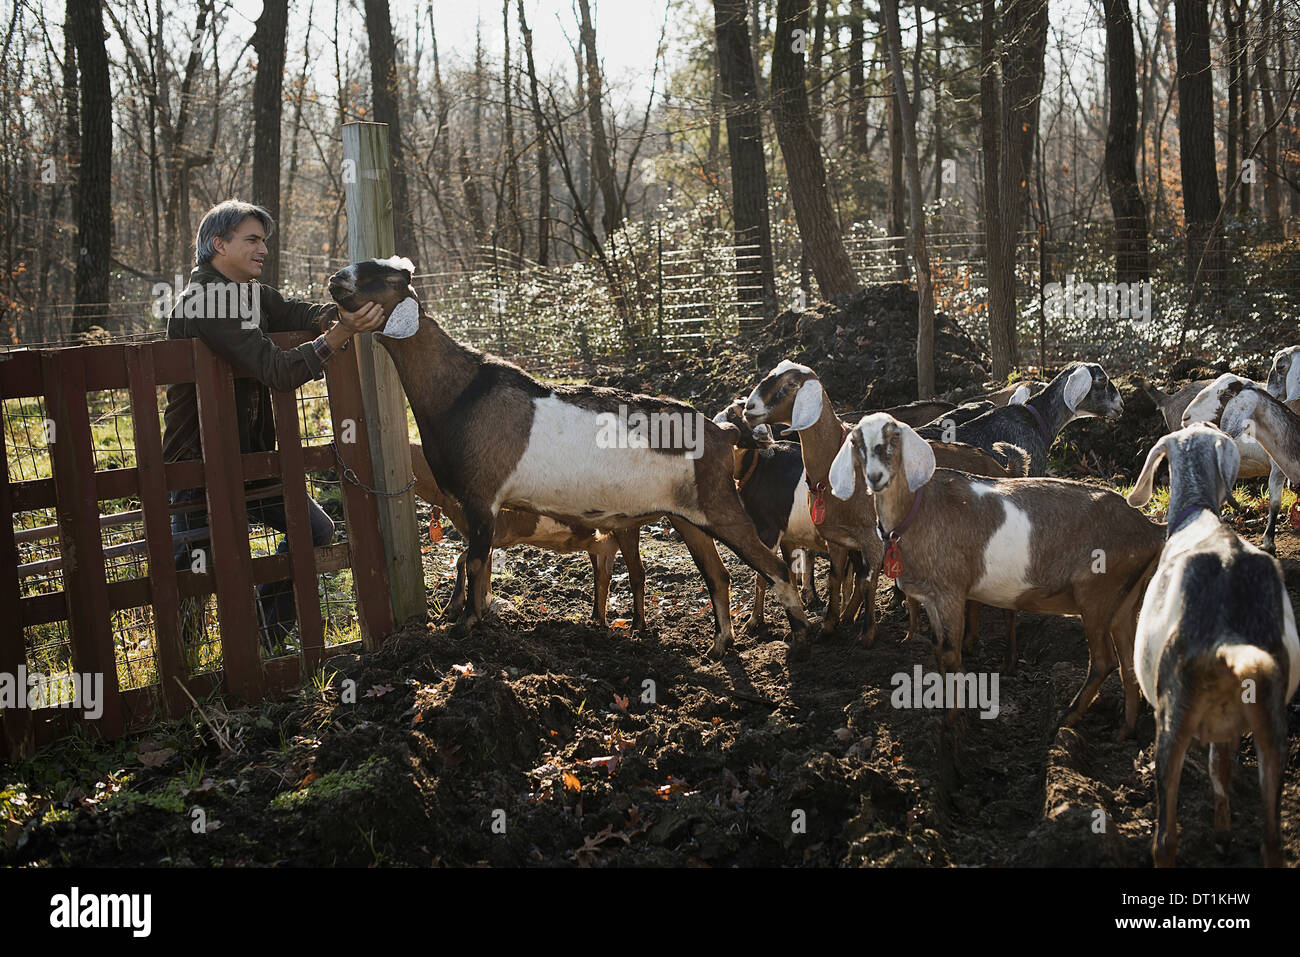 A man standing in a paddock with a flock of goats on an organic dairy farm - Stock Image